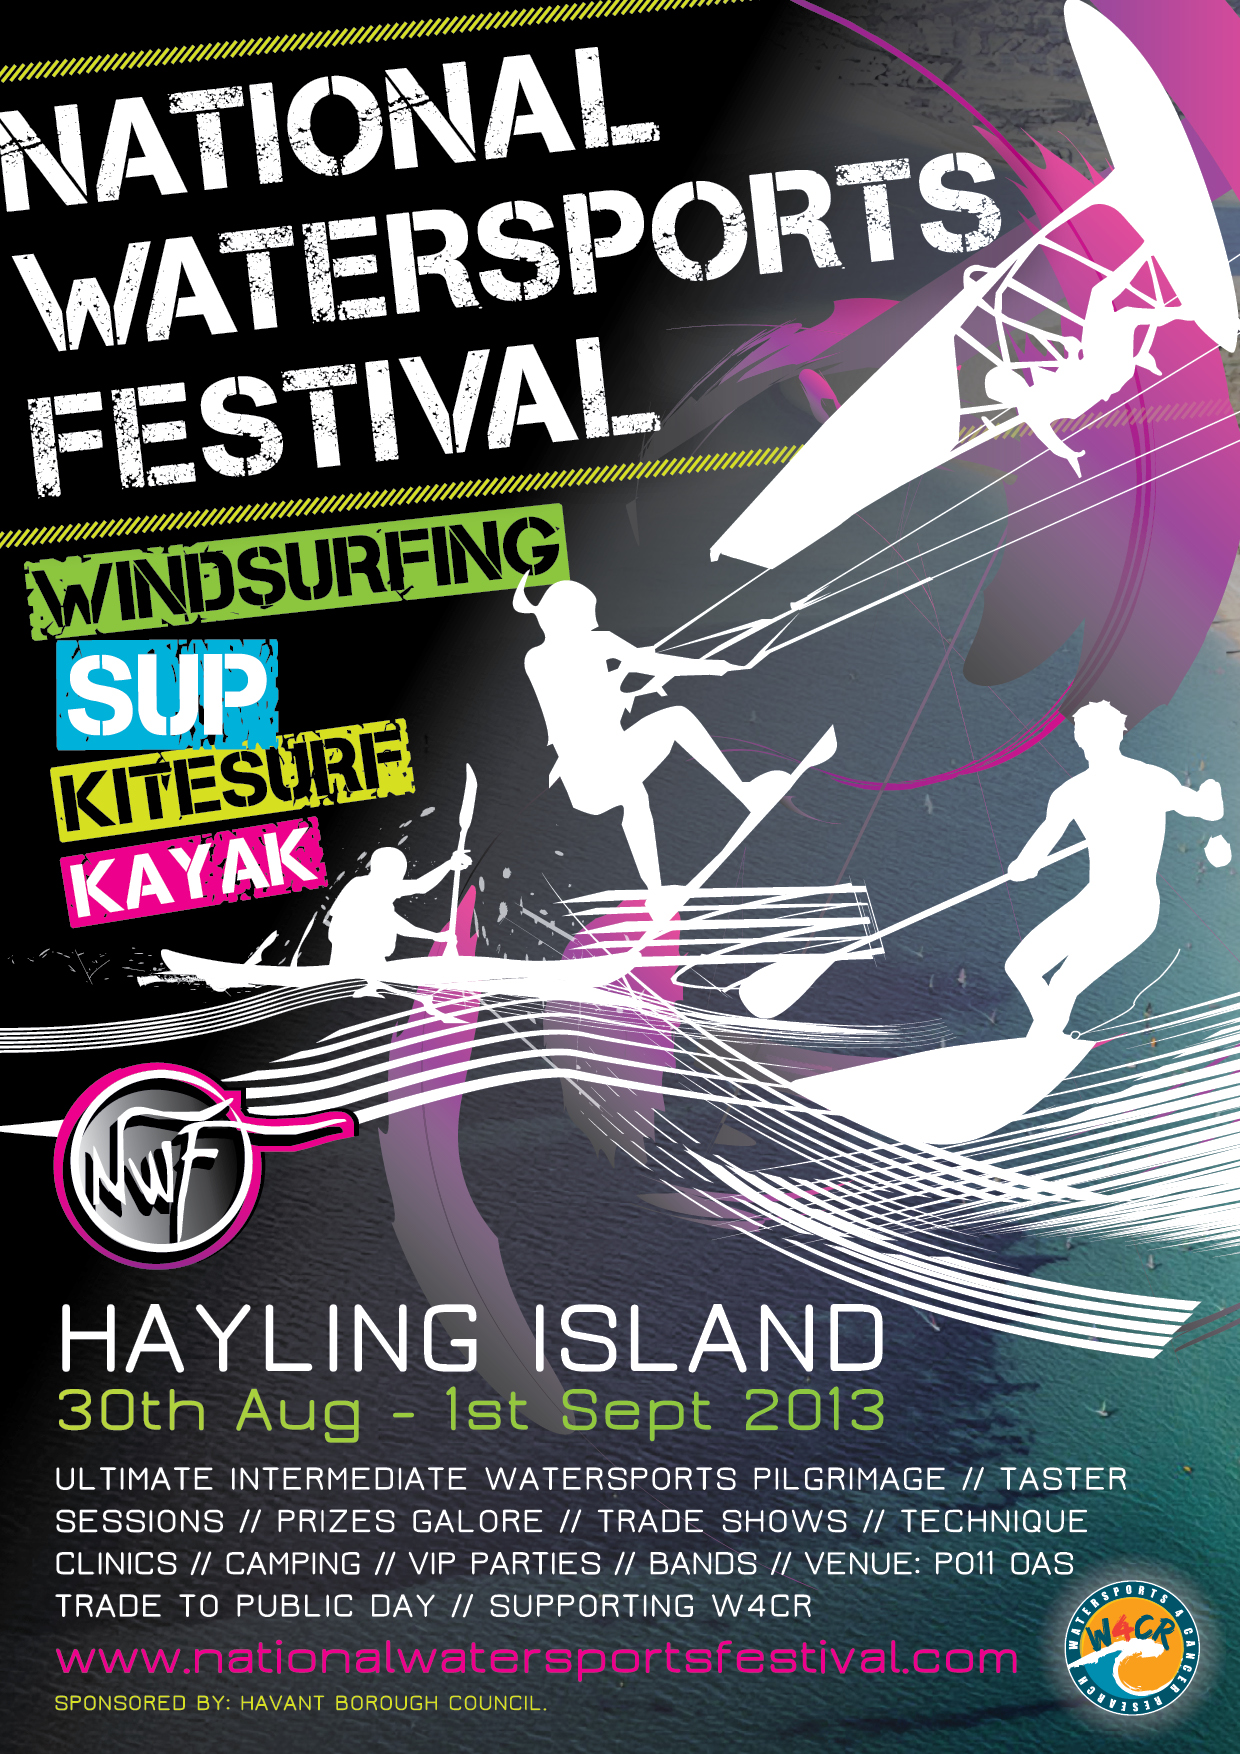 National Watersports Festival 2013 - Hayling Island 1